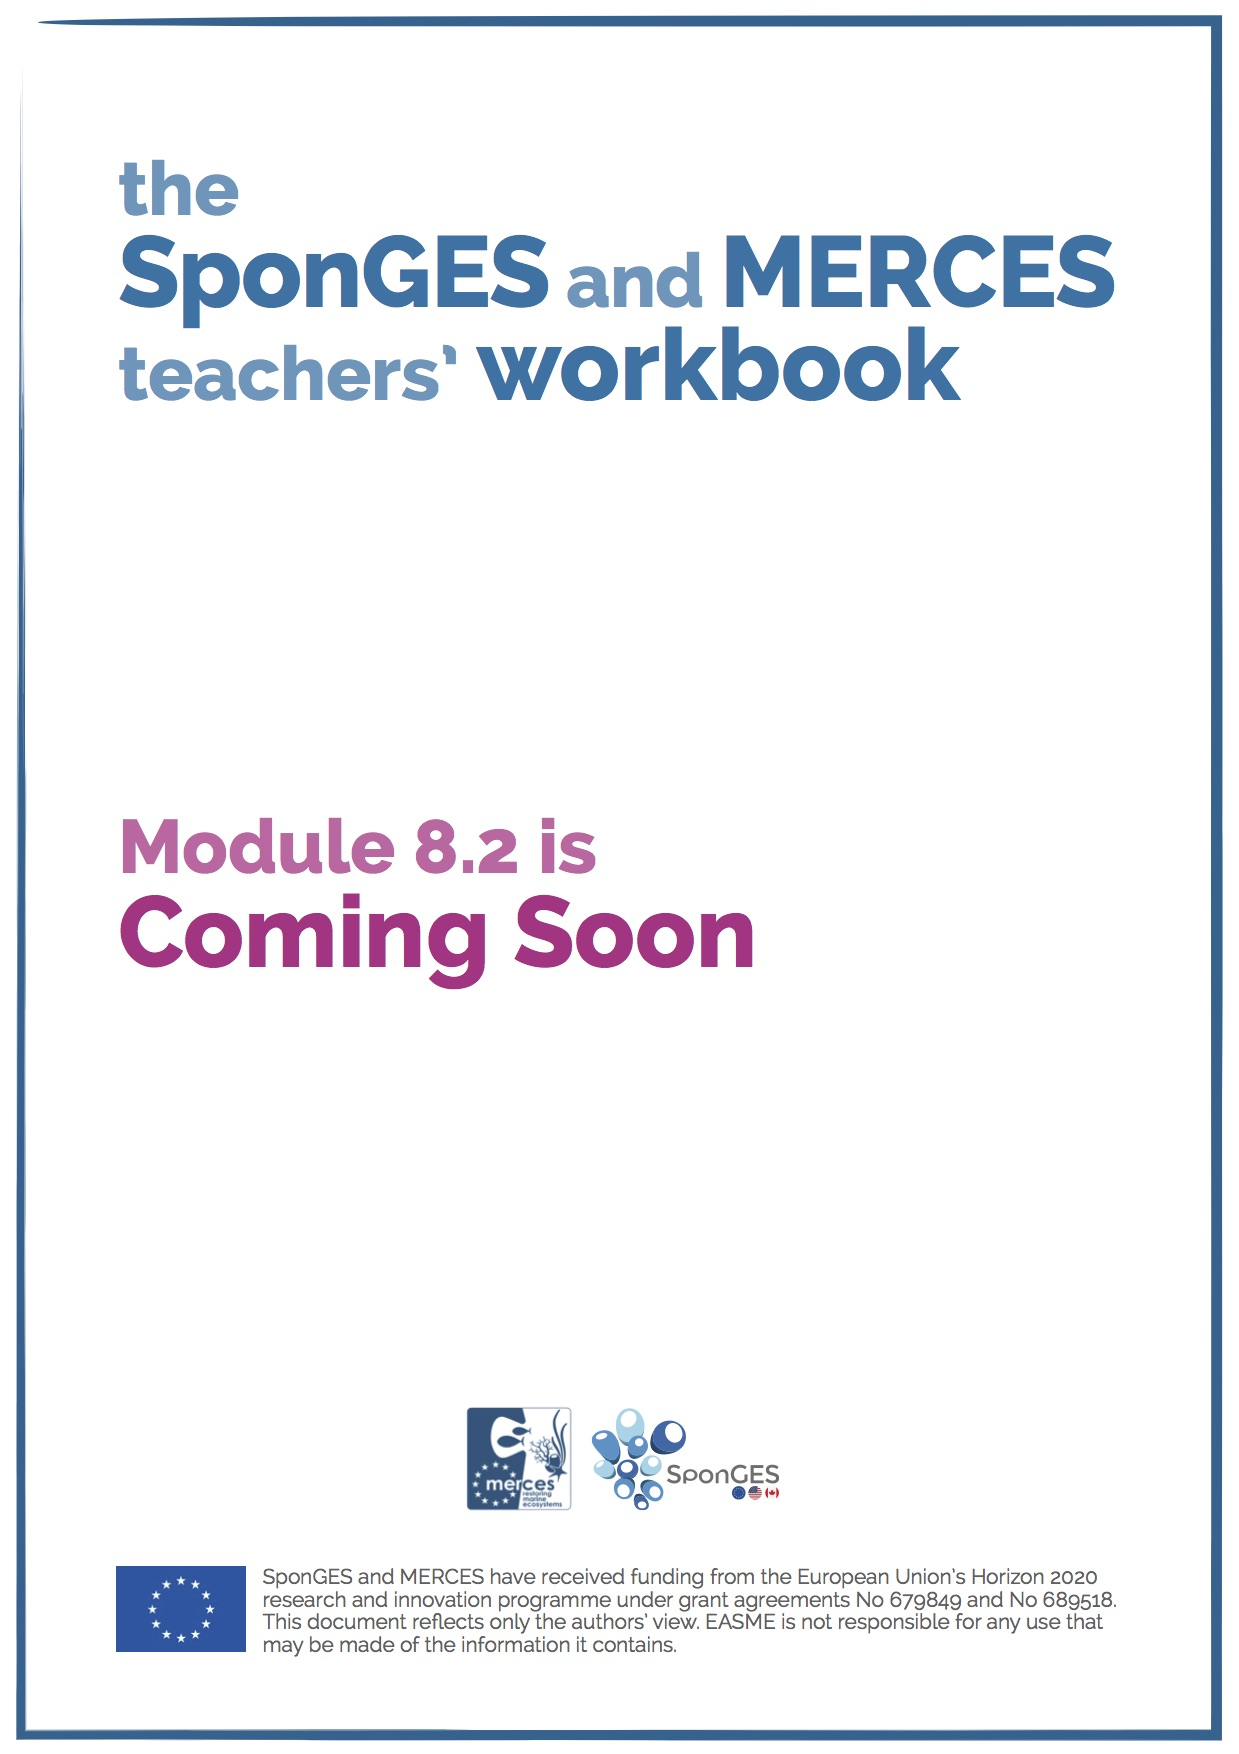 Module 8.2 of the SponGES and MERCES teachers' workbook